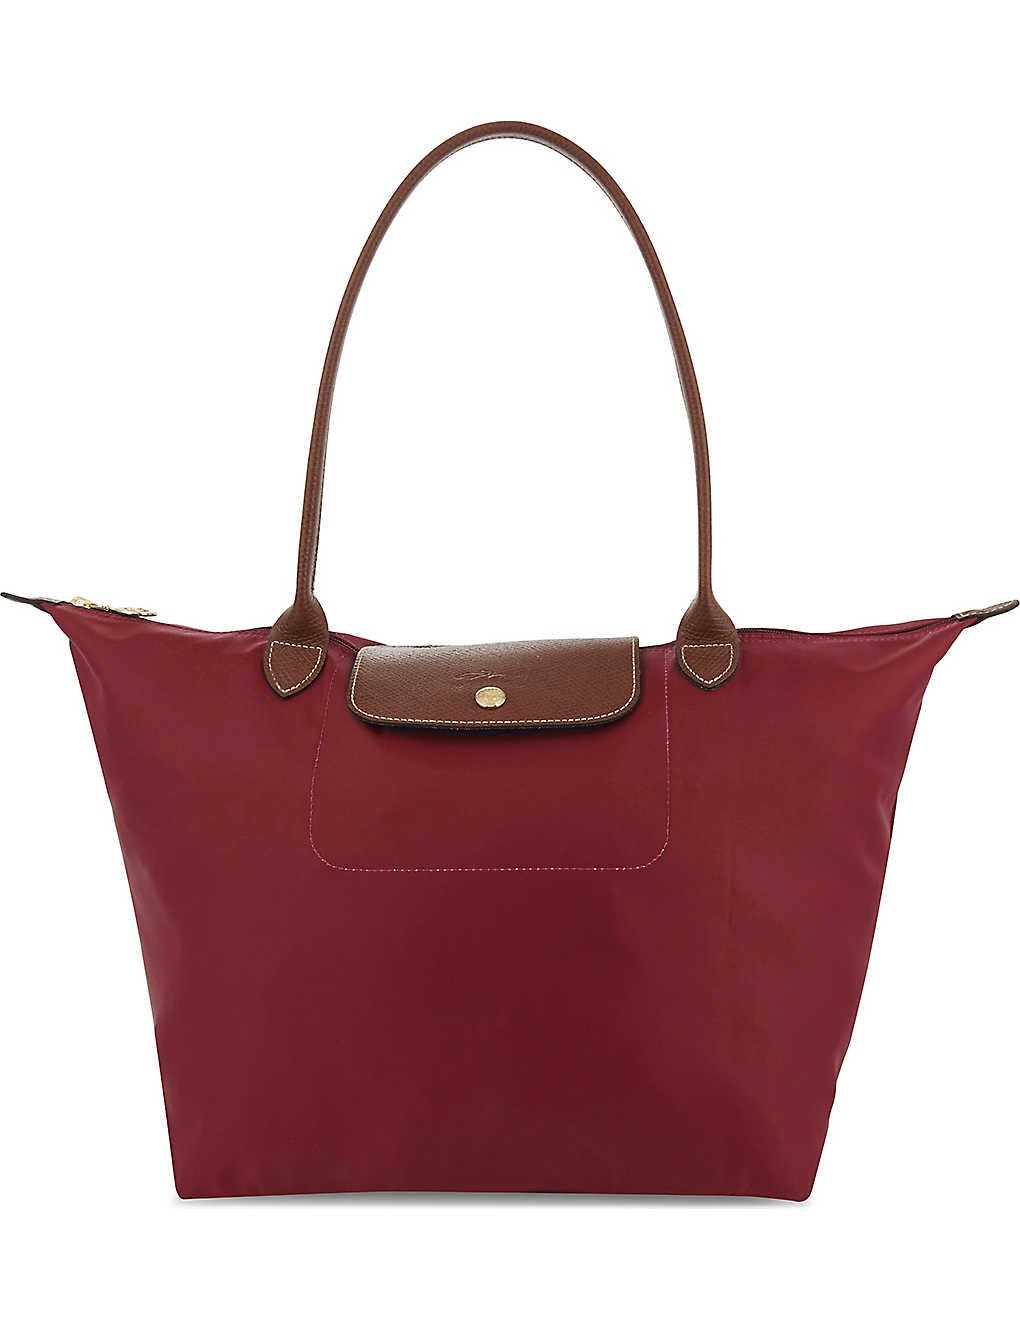 Le Pliage tote - RED